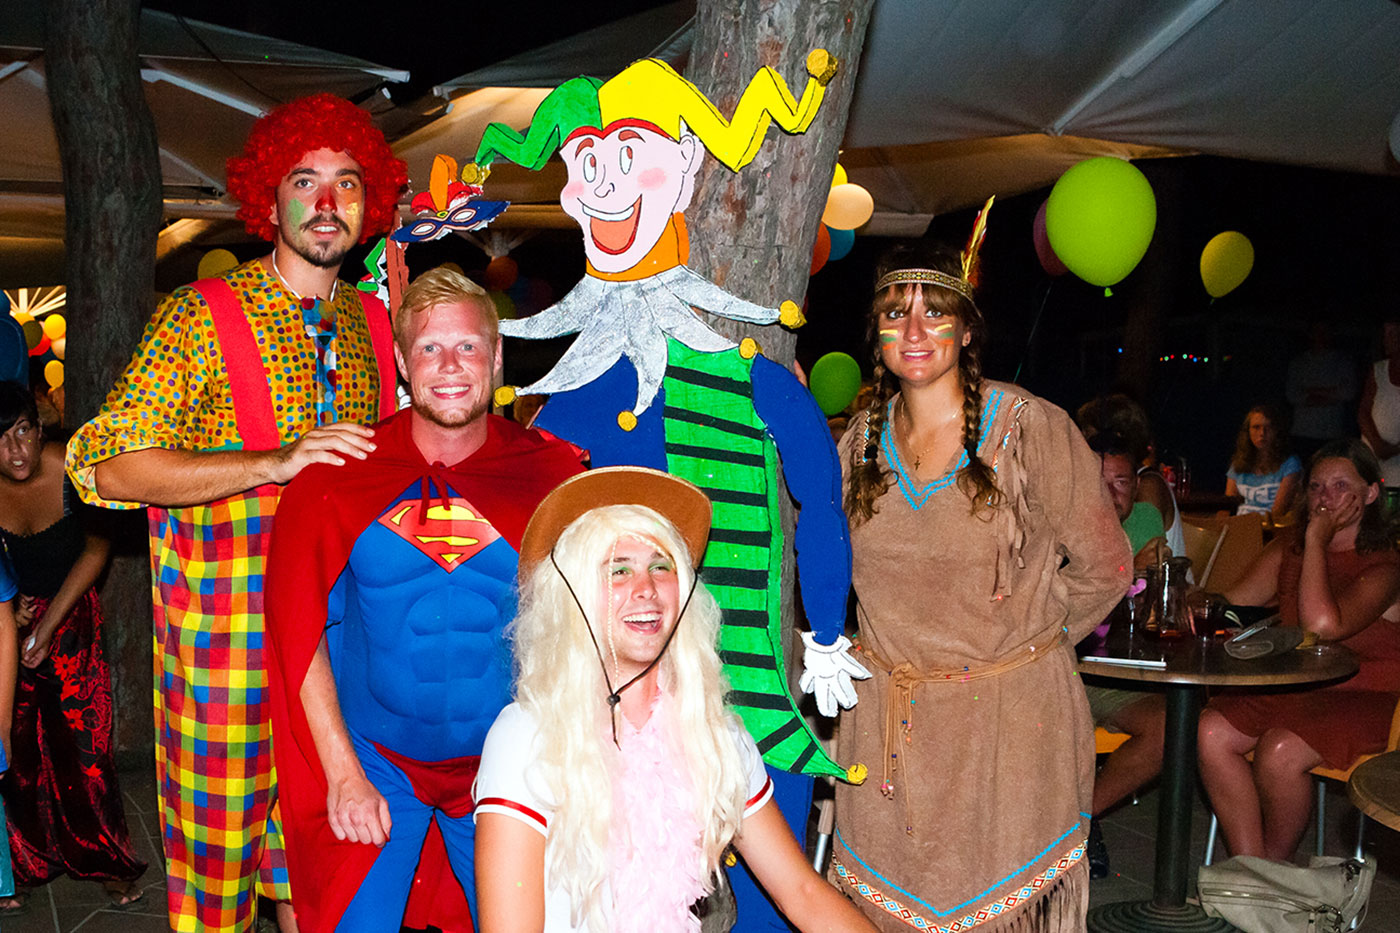 Campsite with fancy dress parties at night for all ages